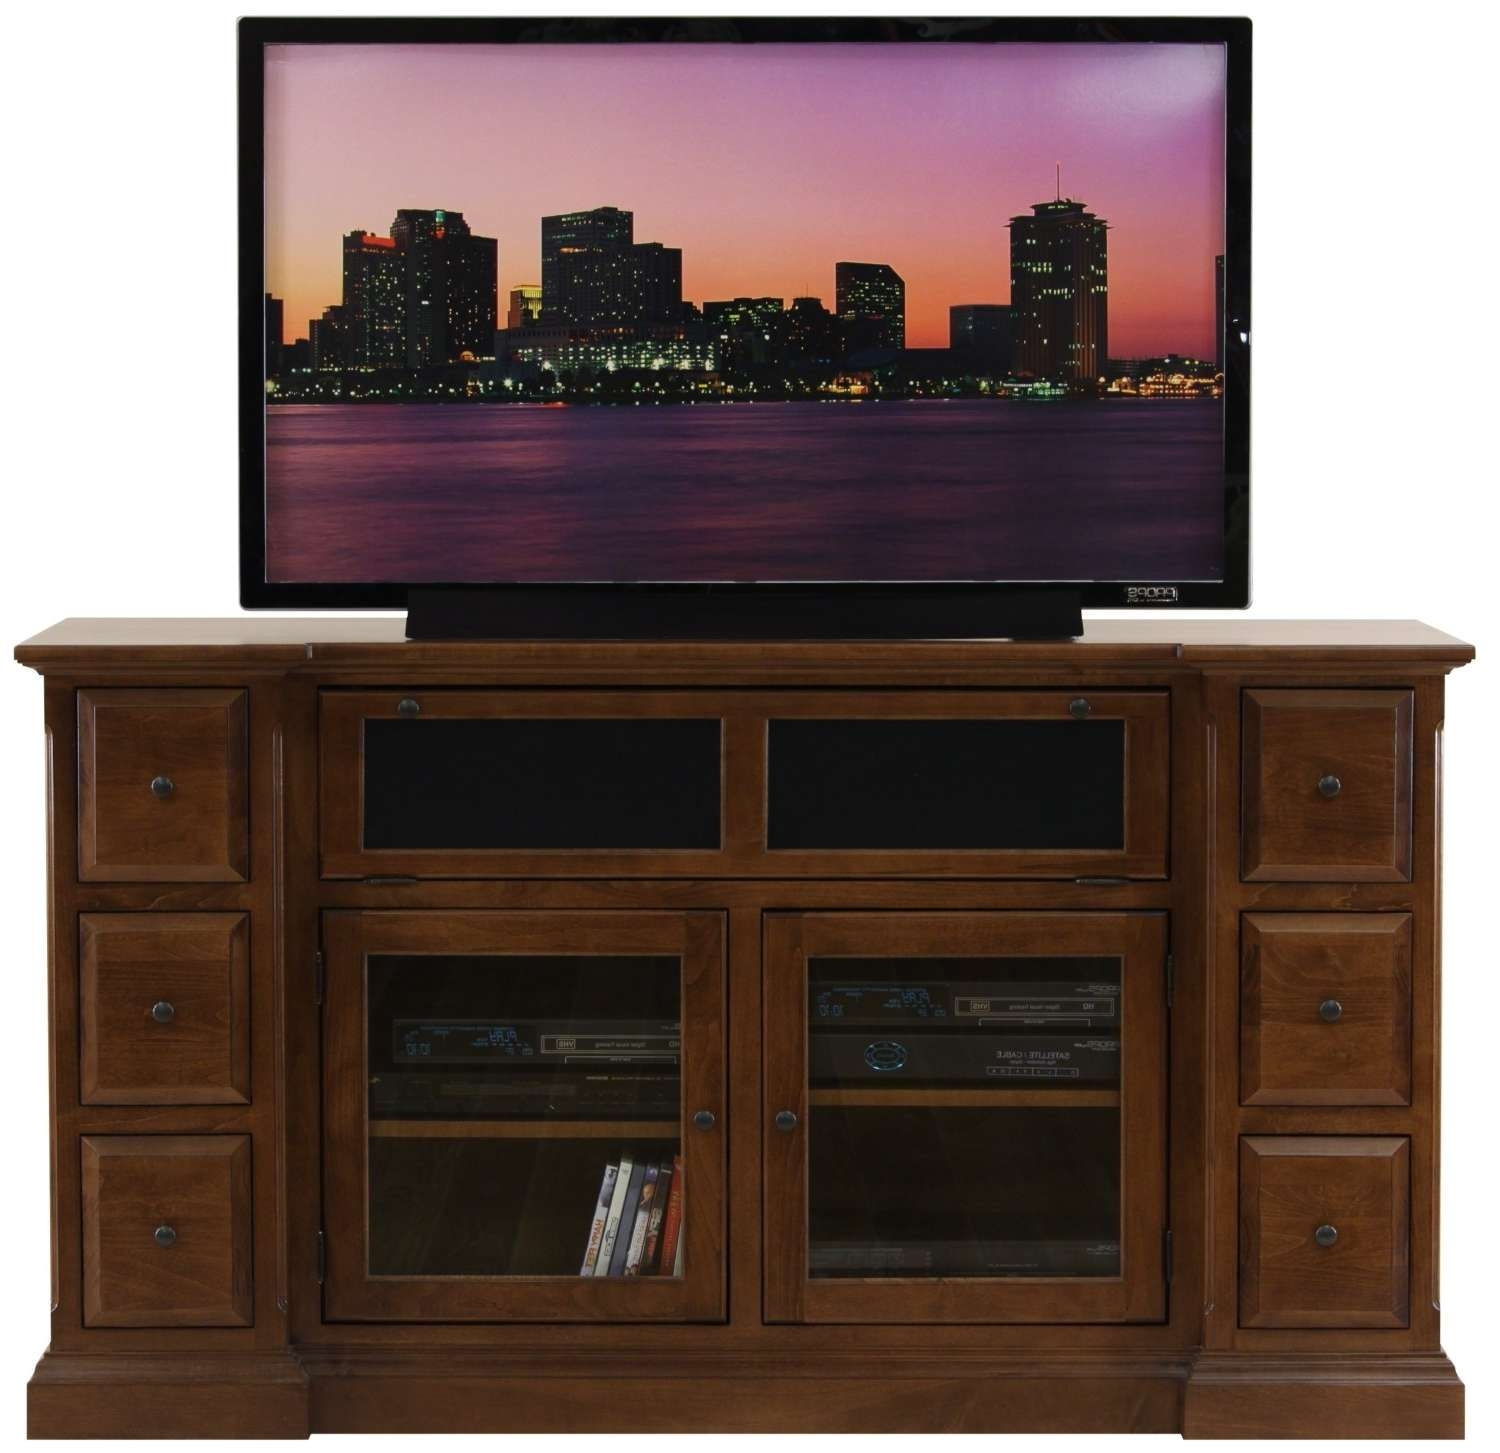 Fresh Denver Cherry Wood Tv Stand Walmart #17102 Inside Cherry Wood Tv Cabinets (View 11 of 20)